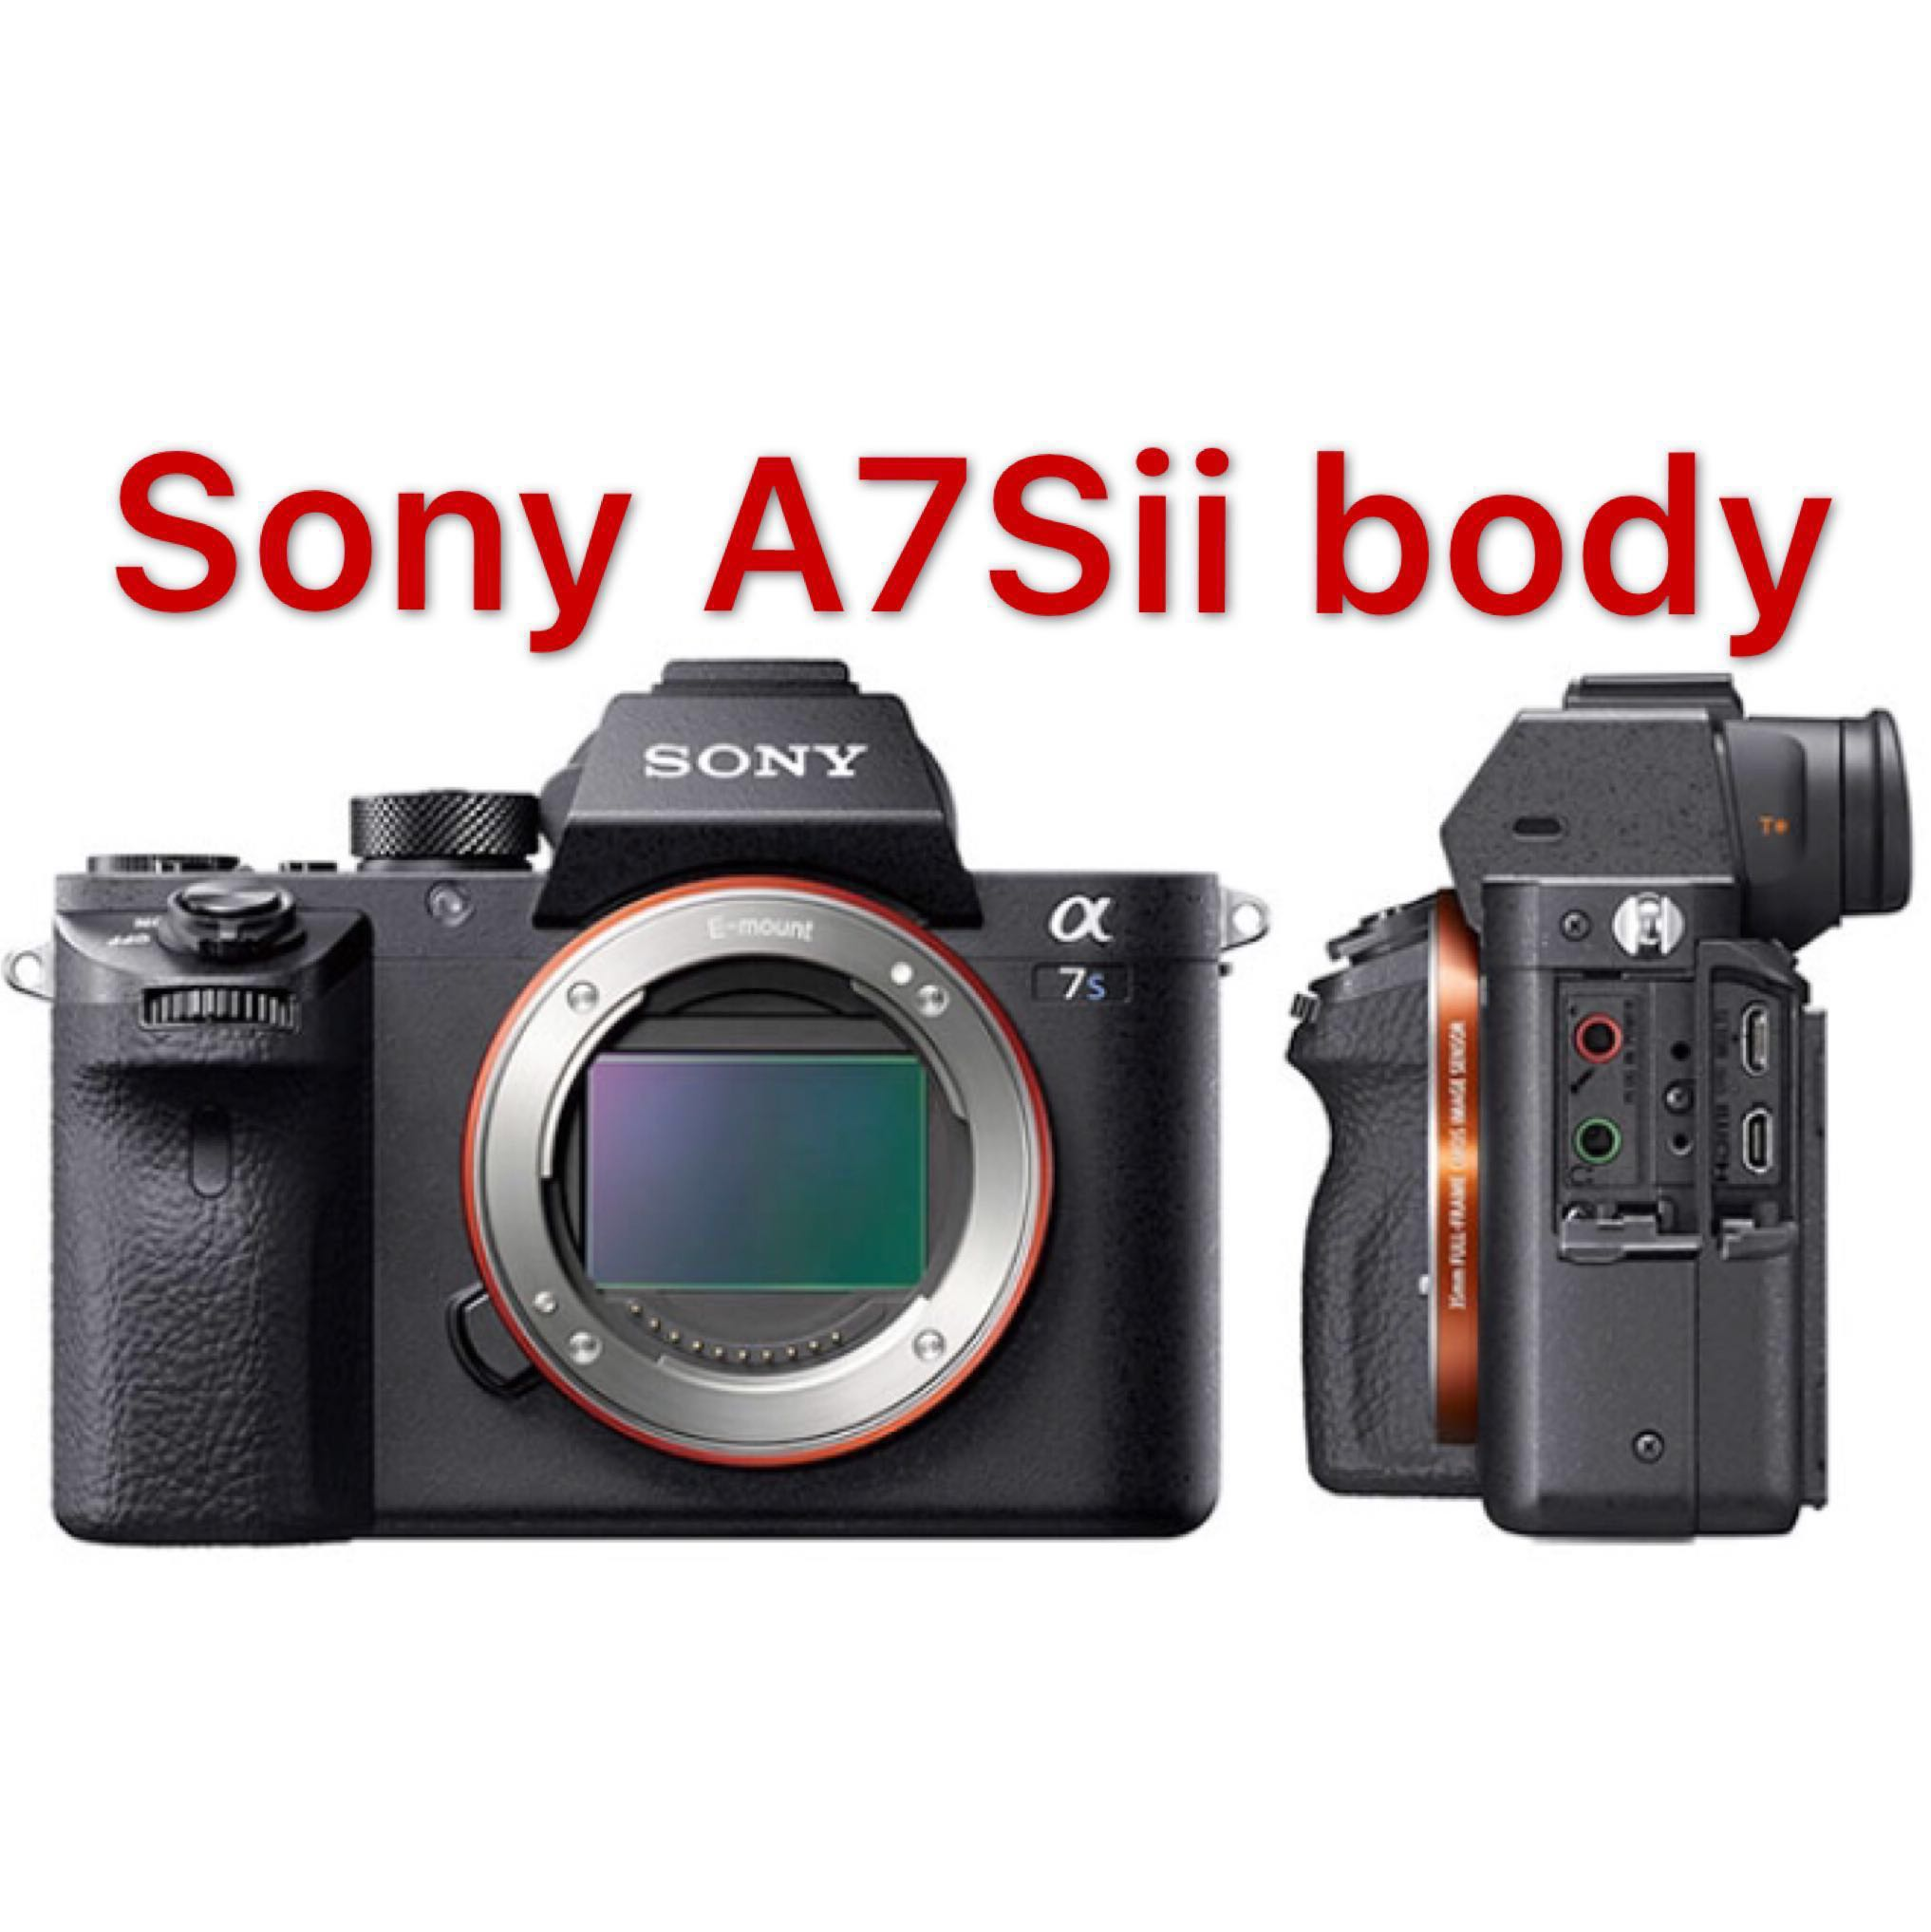 Sony Alpha A7s Ii Mirrorless Digital Camera Body Only Photography A7r Photo